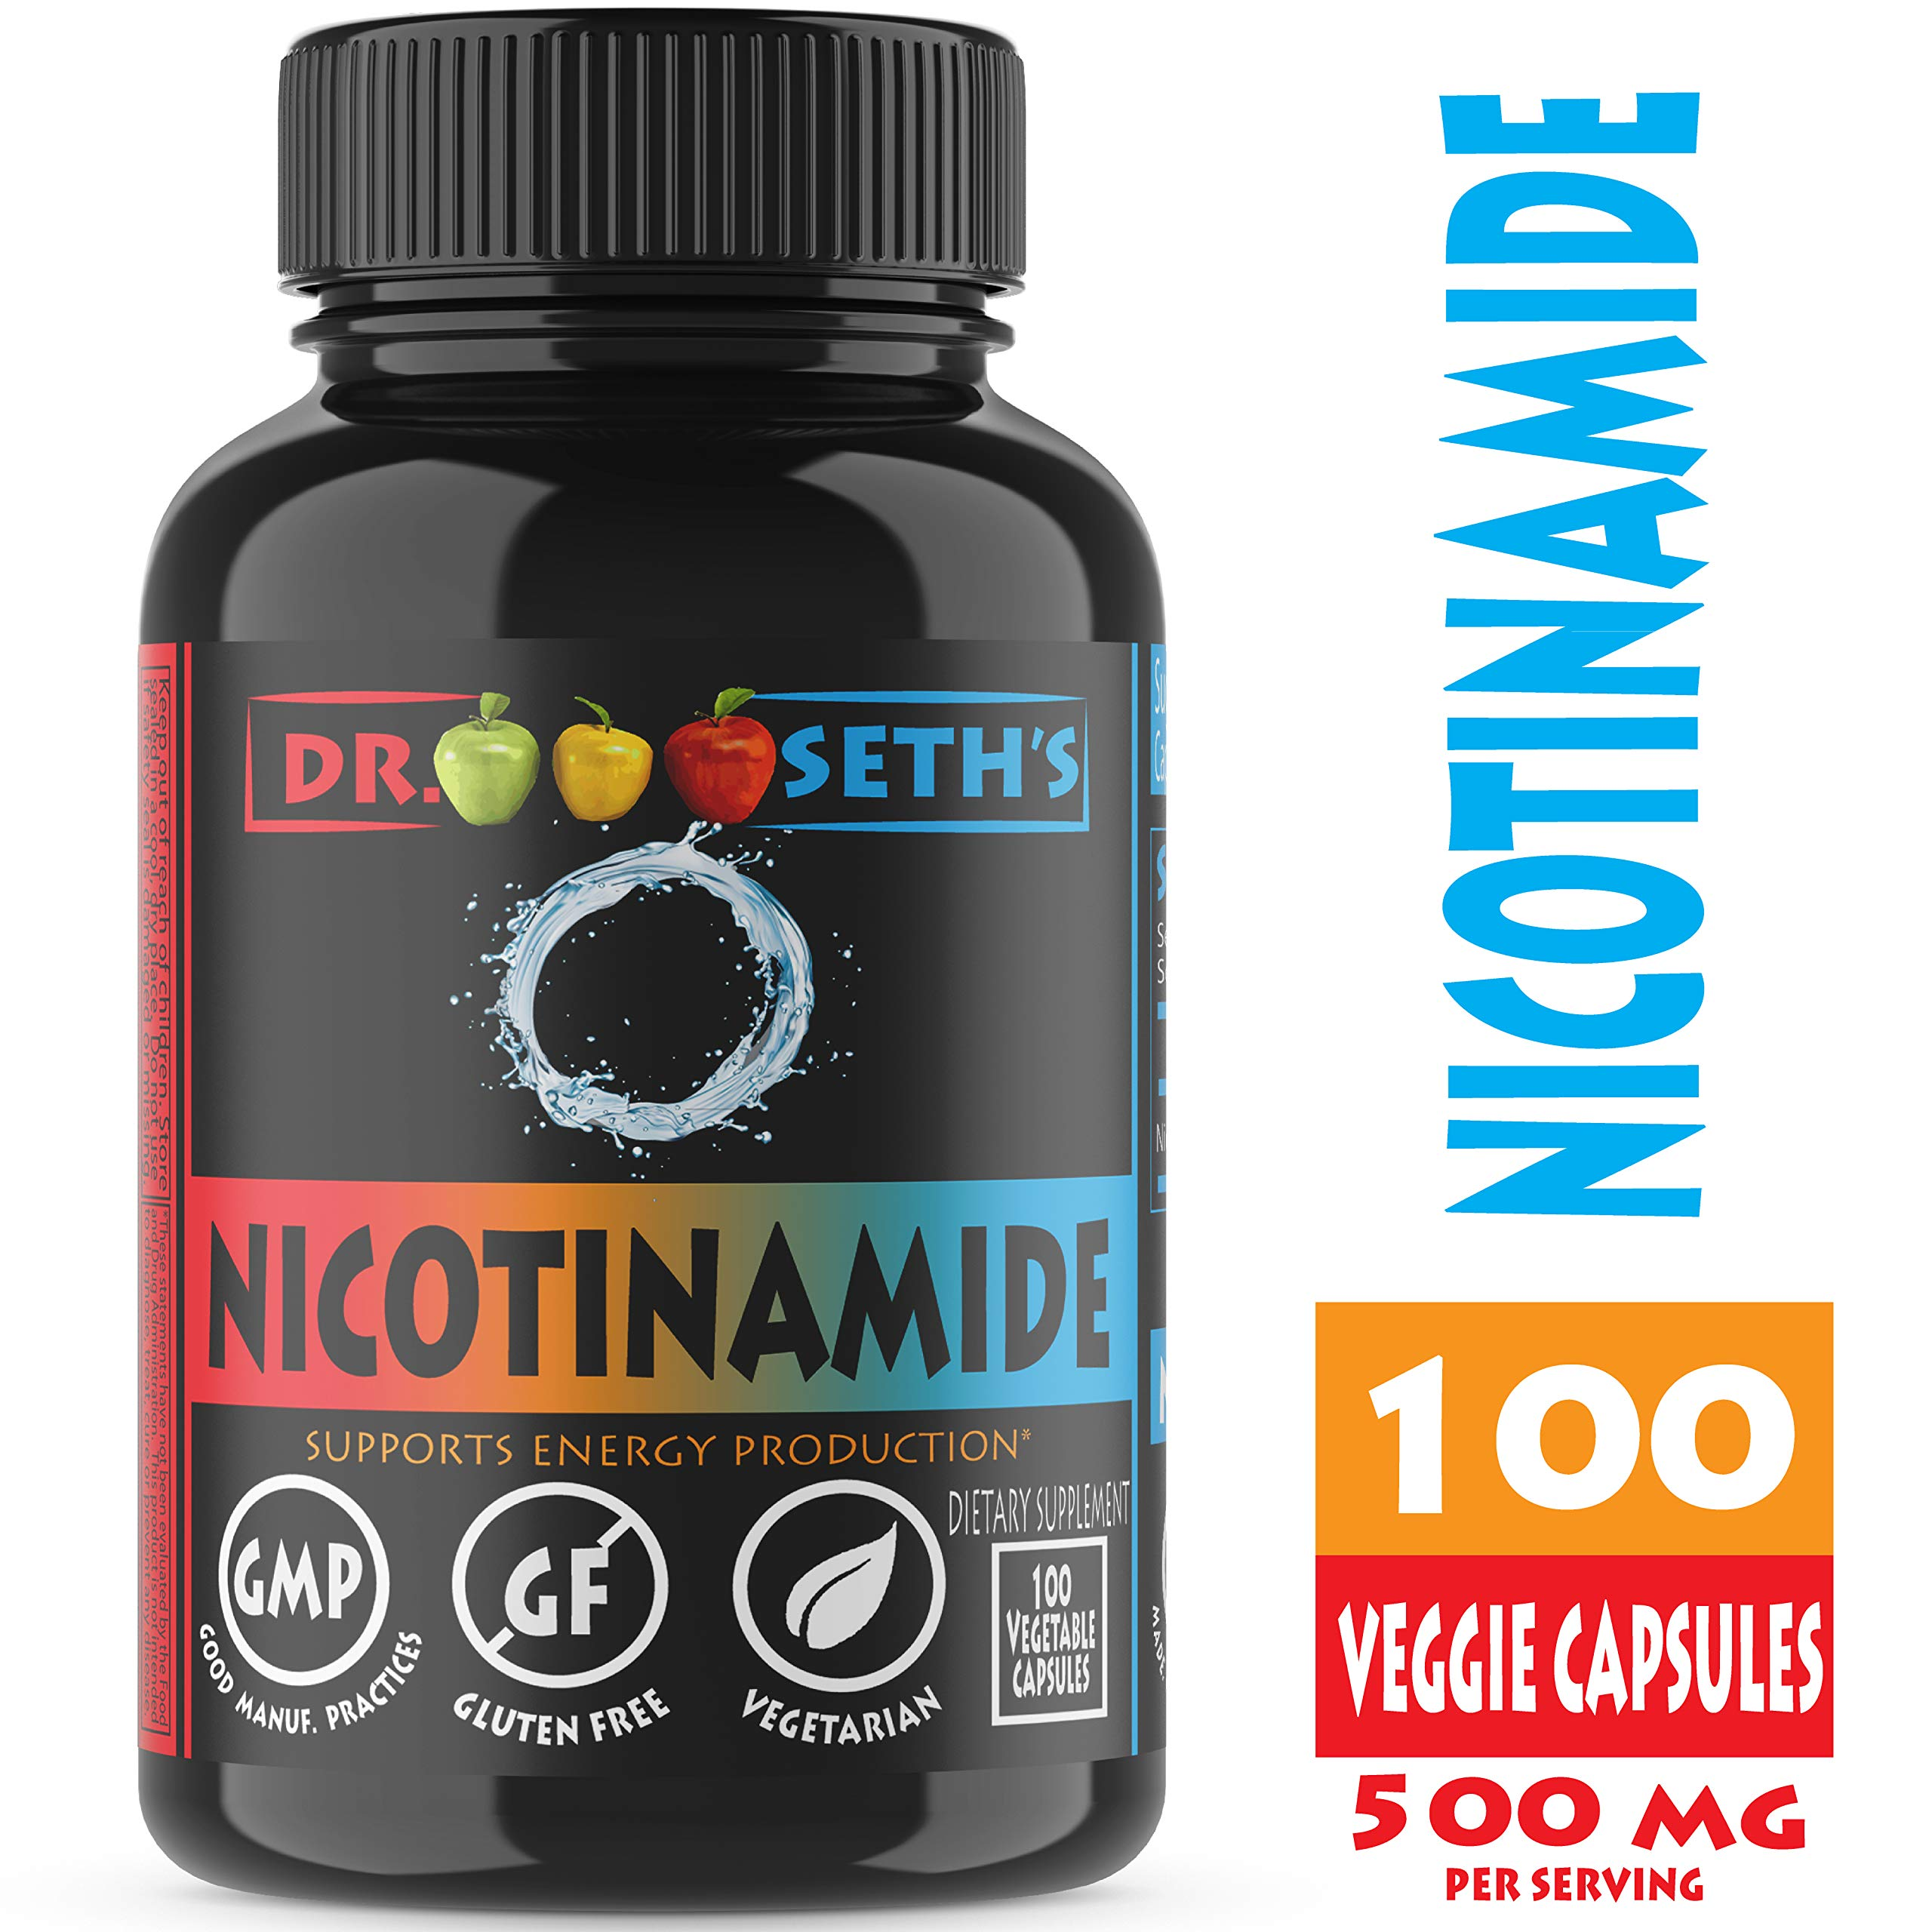 Nicotinamide 500 mg 100 Niacinamide Veggie Capsules - Vitamin B3 - Flush Free Niacin Formula - Support Energy Production, Metabolism, Niacinimide - Gluten Free - Vegetarian - Non GMO-GMP- by Dr. Seth